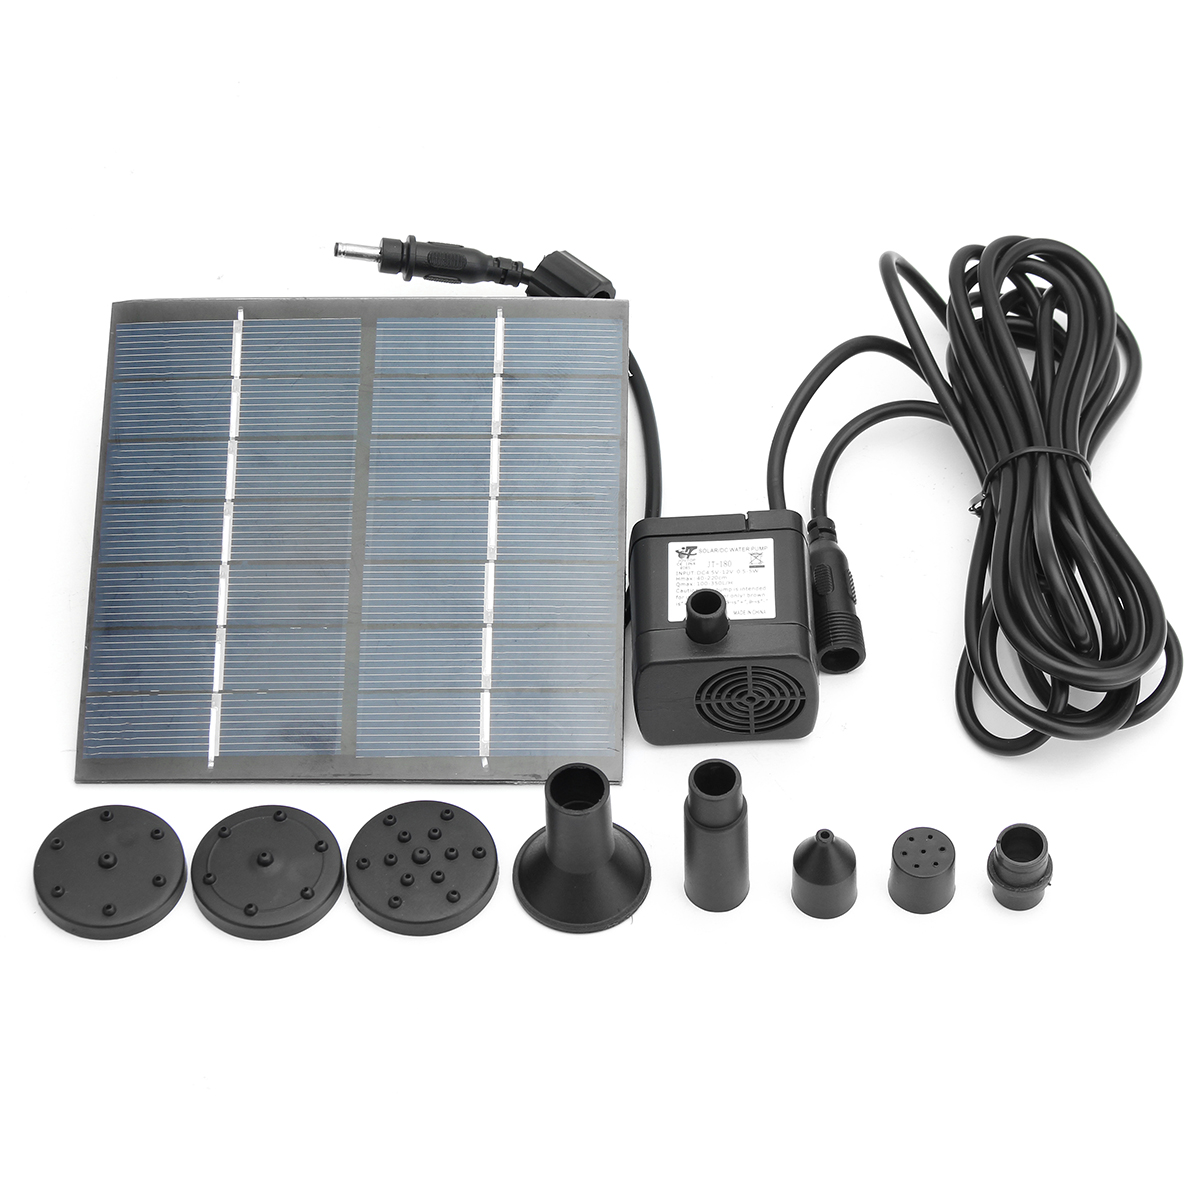 JT-180 1.4W 7V Solar Panel Power Fountain Pump Outdoor Garden Pond Pool Submersible Water Pump Kit